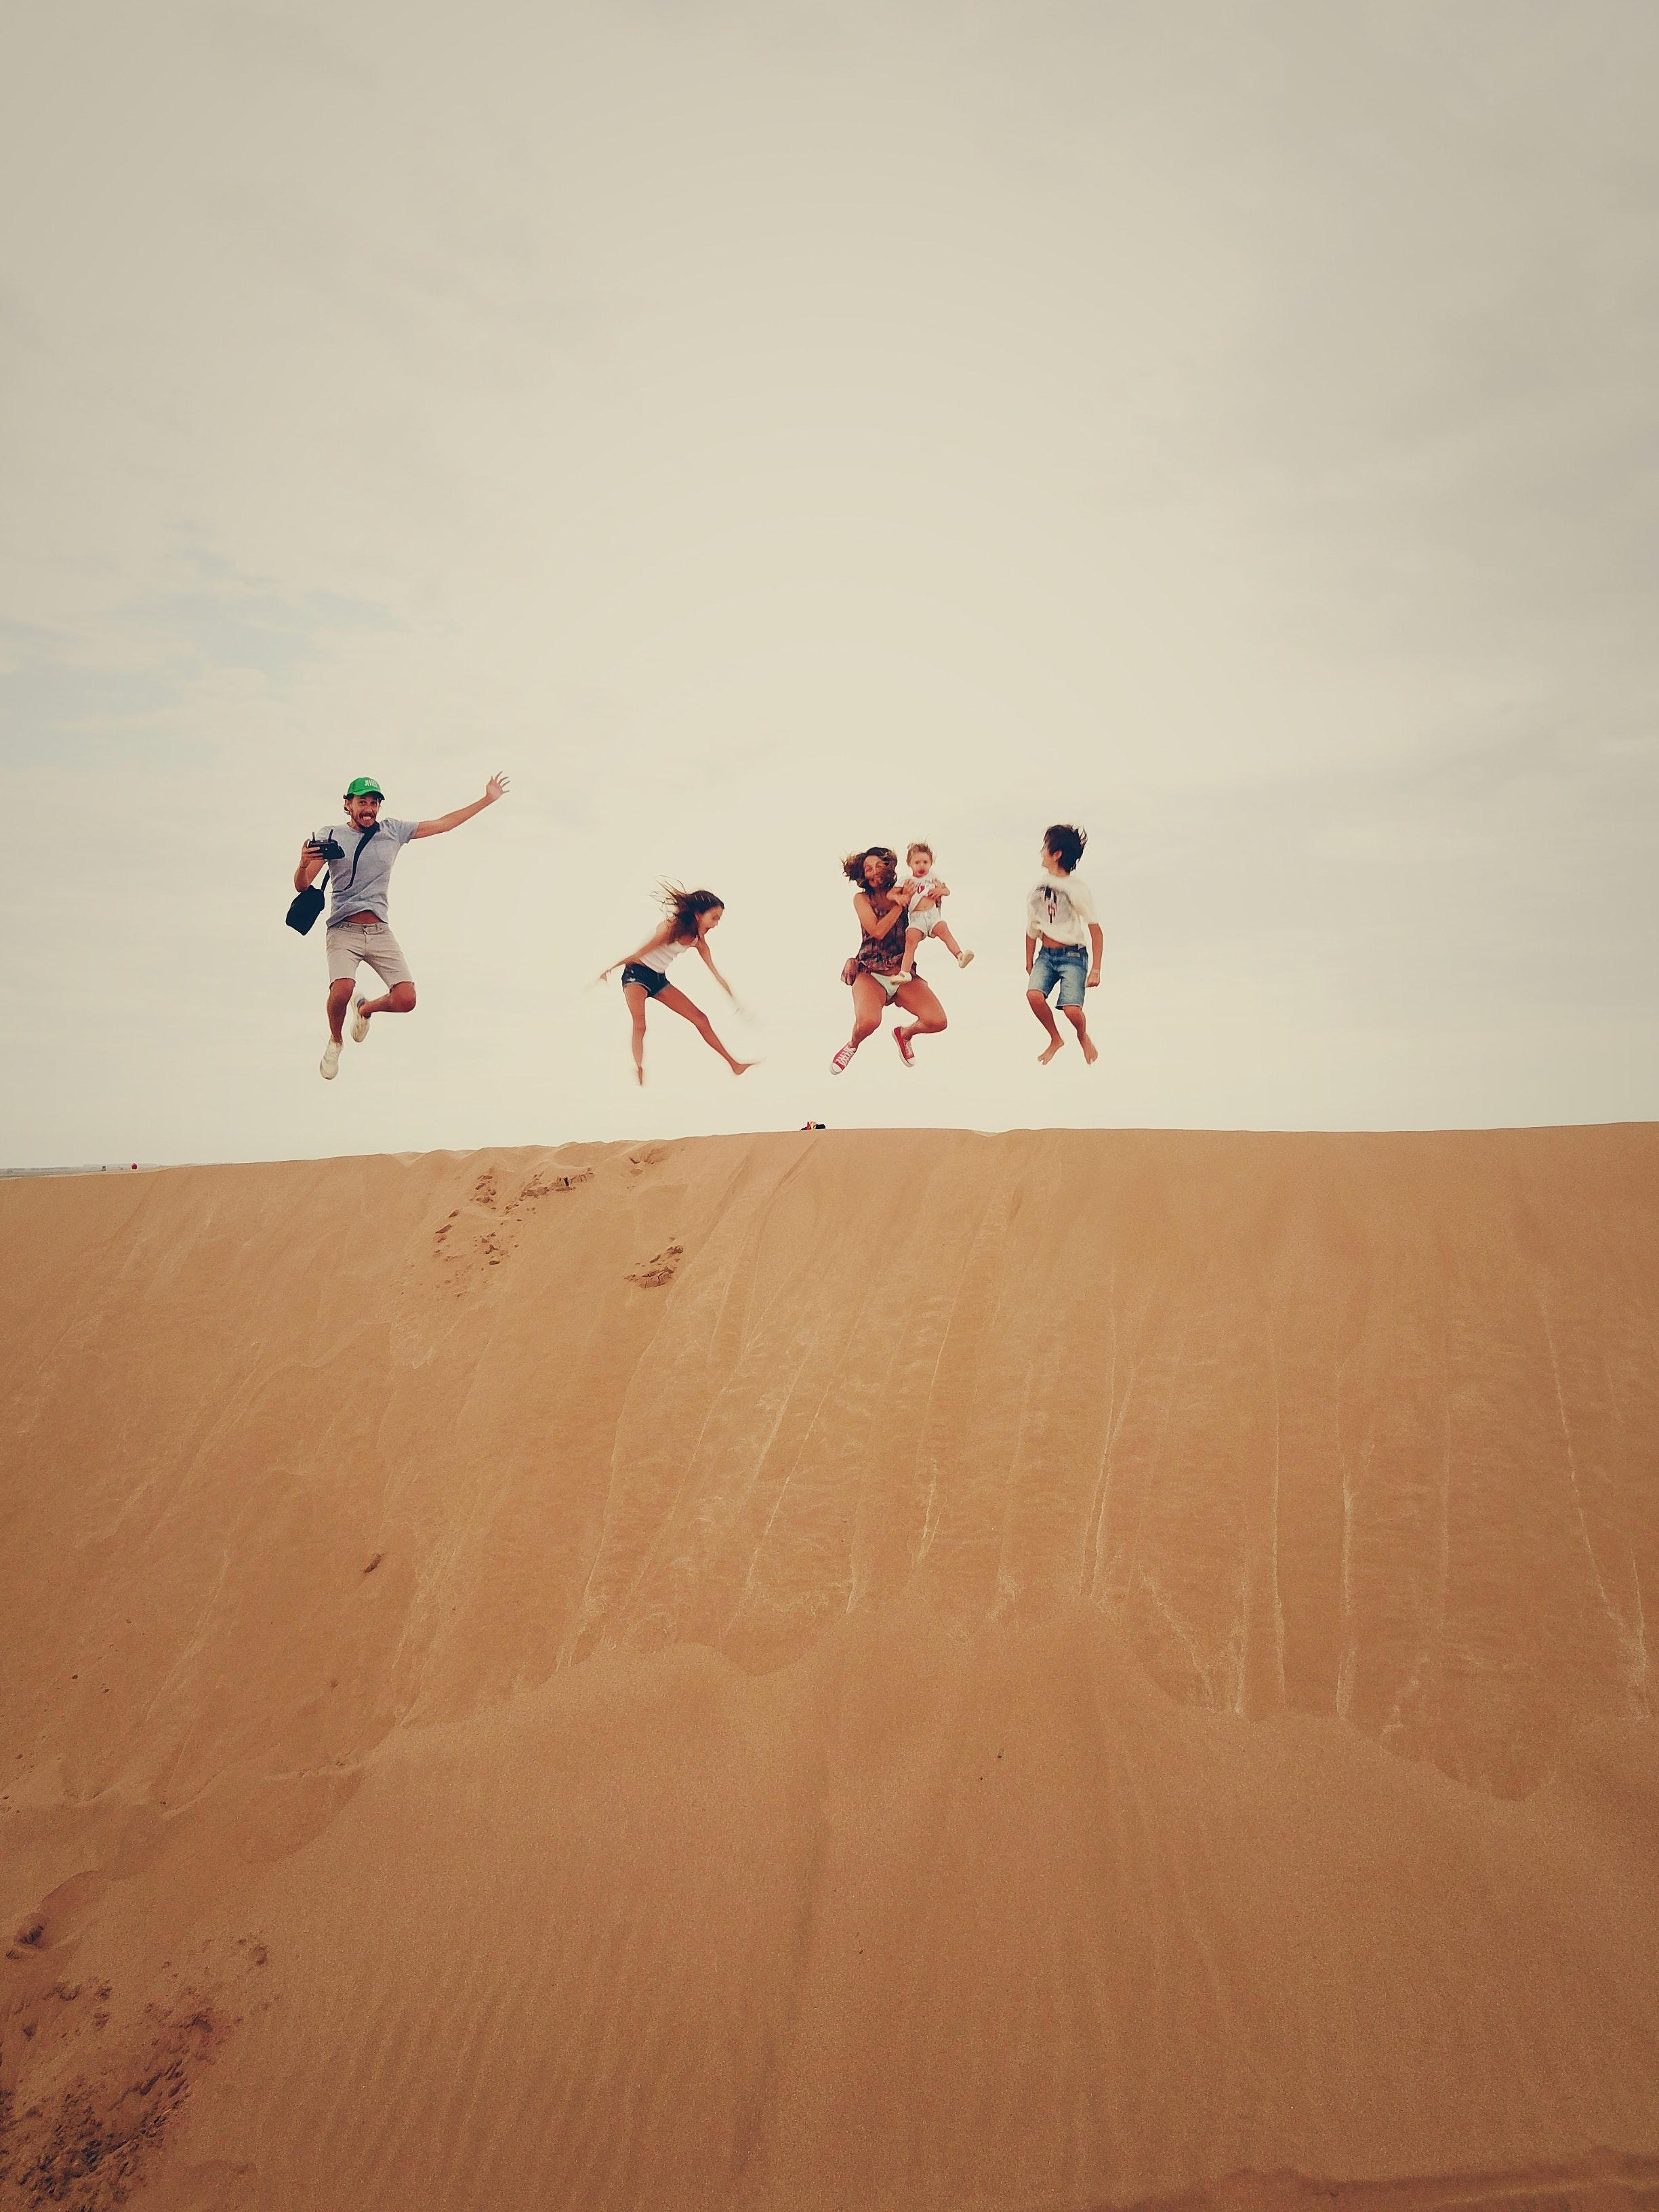 A family jumping exuberantly into the air over a sand dune